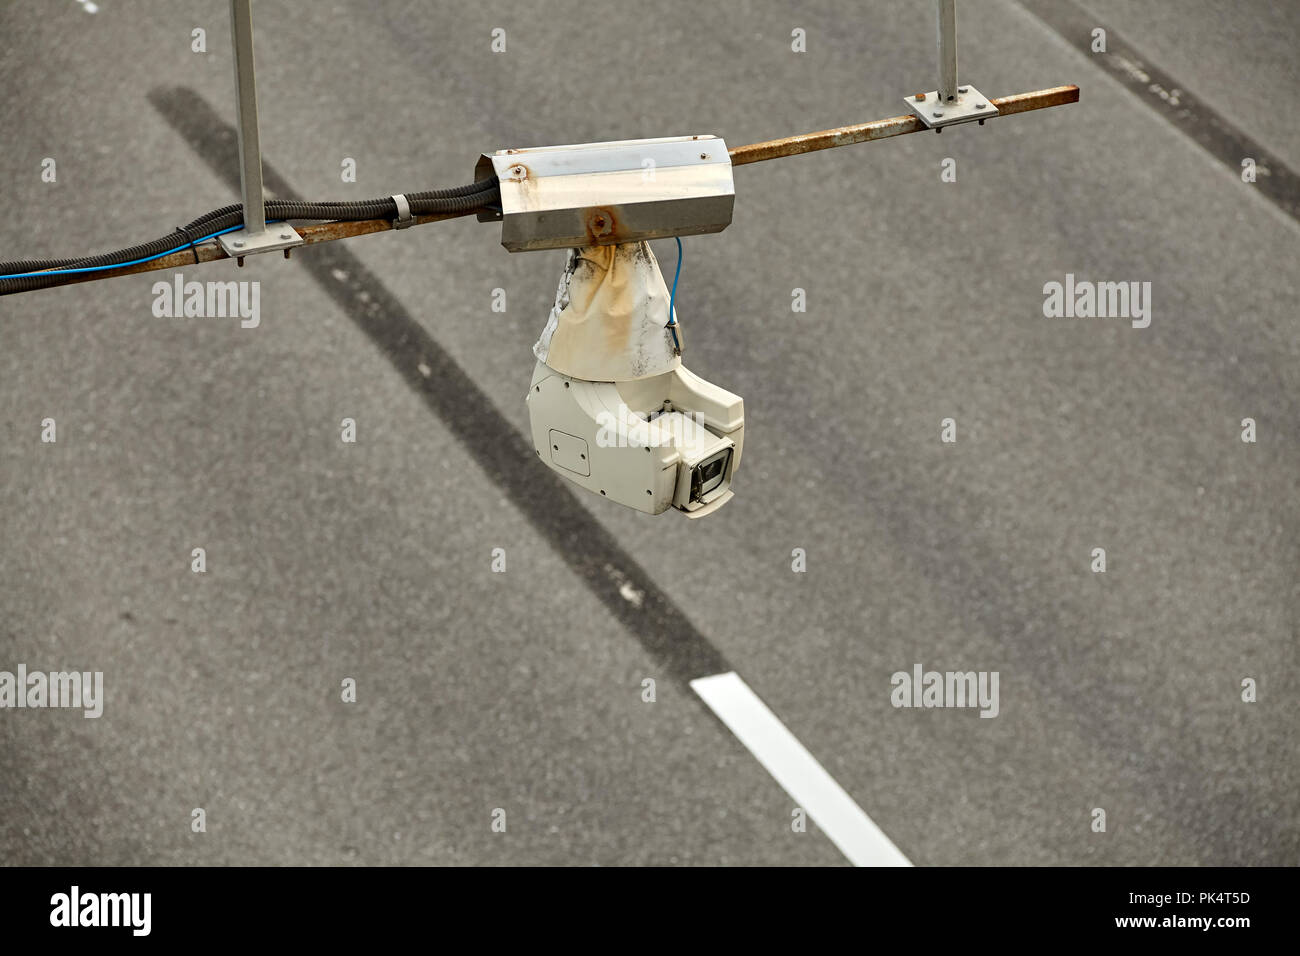 CCTV or road surveillance camera or traffic security camera is located above the highway. - Stock Image